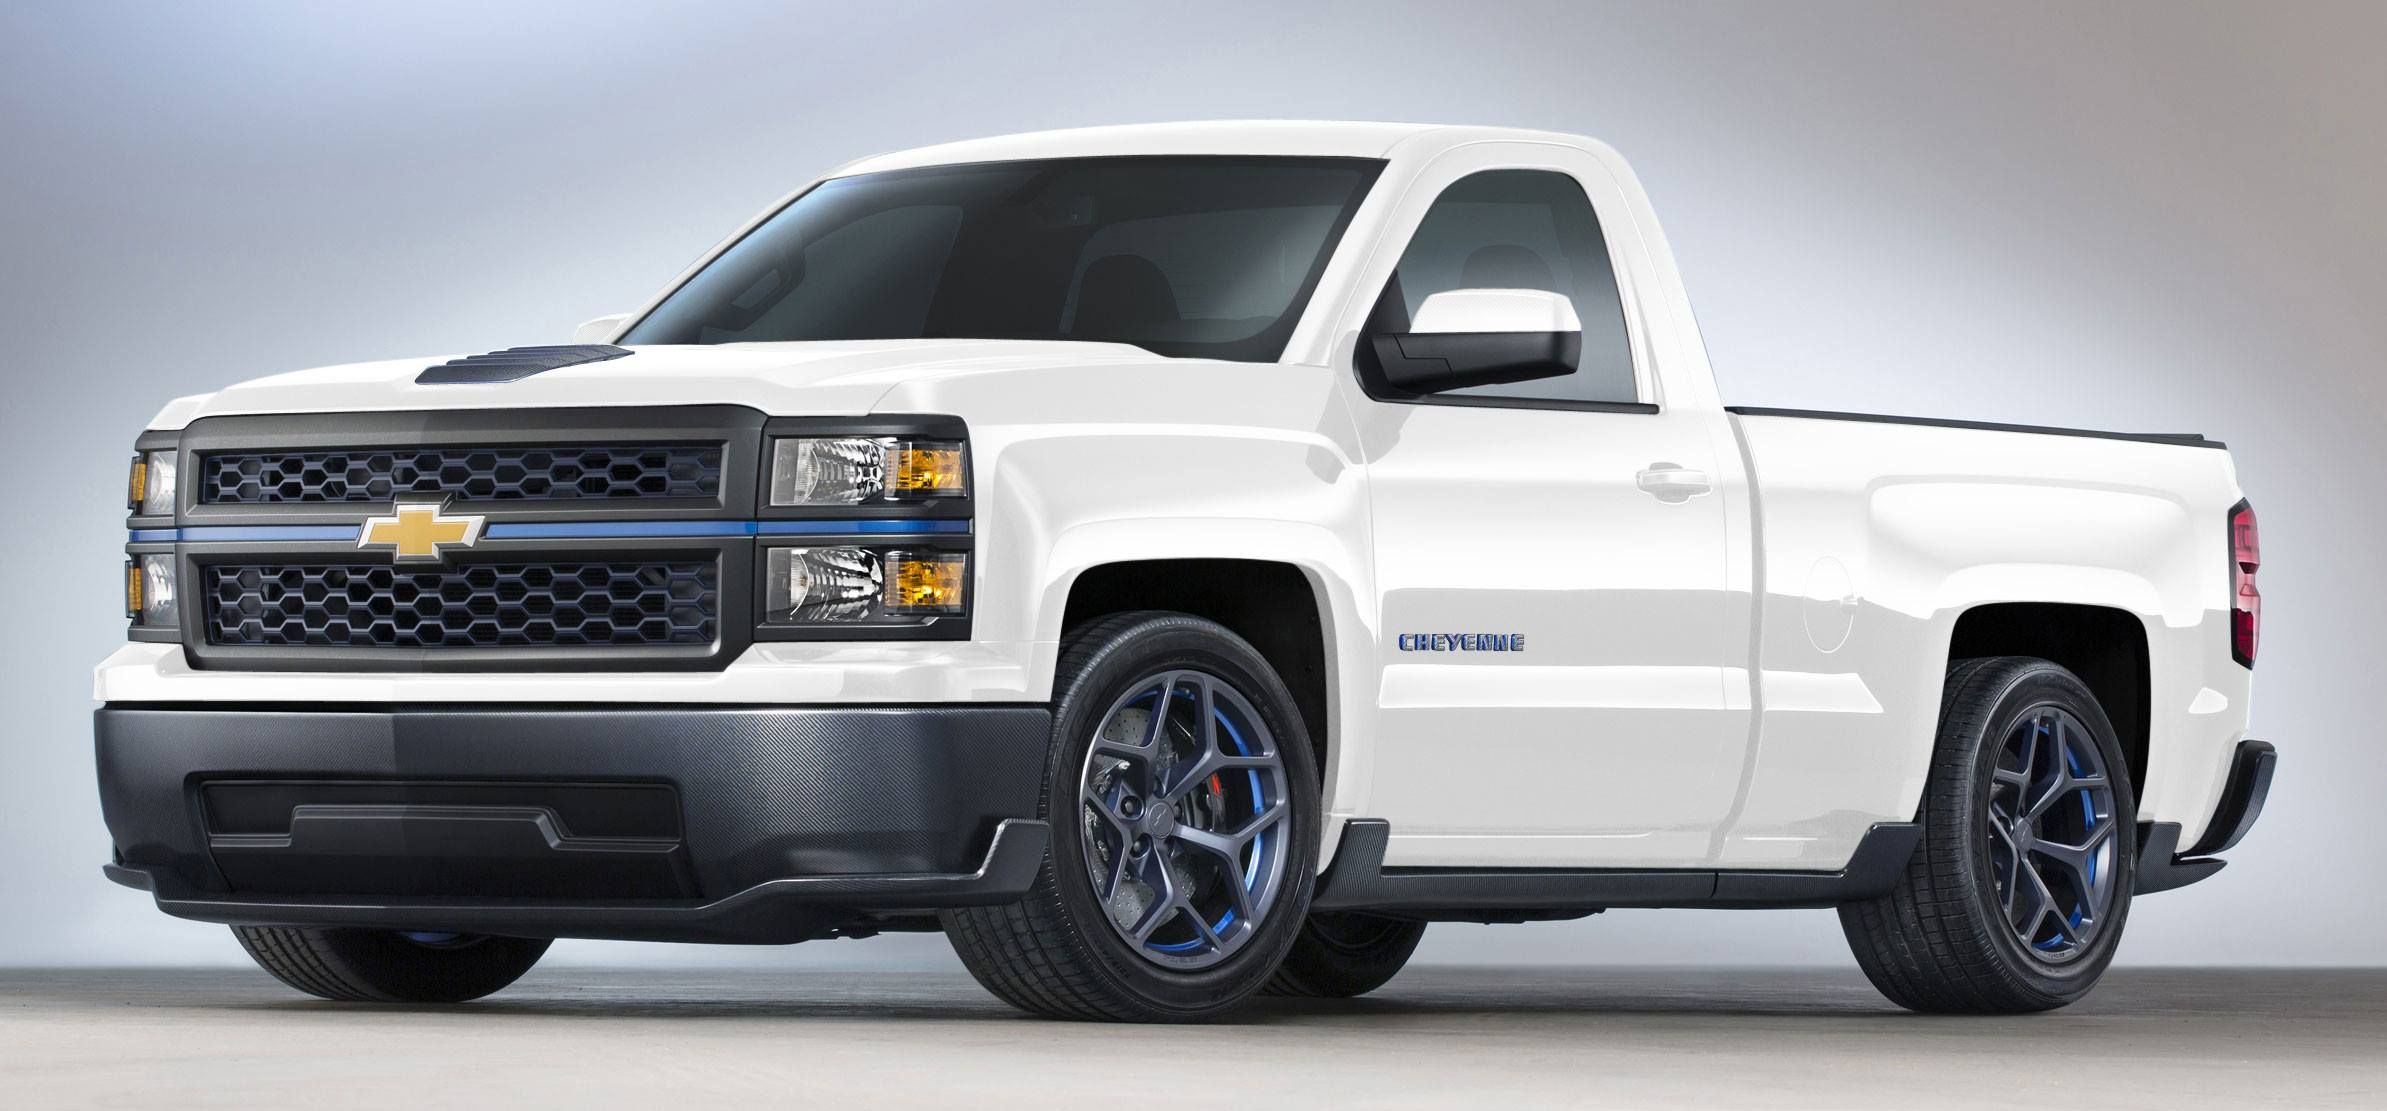 2014 chevrolet silverado cheyenne concept in summit white